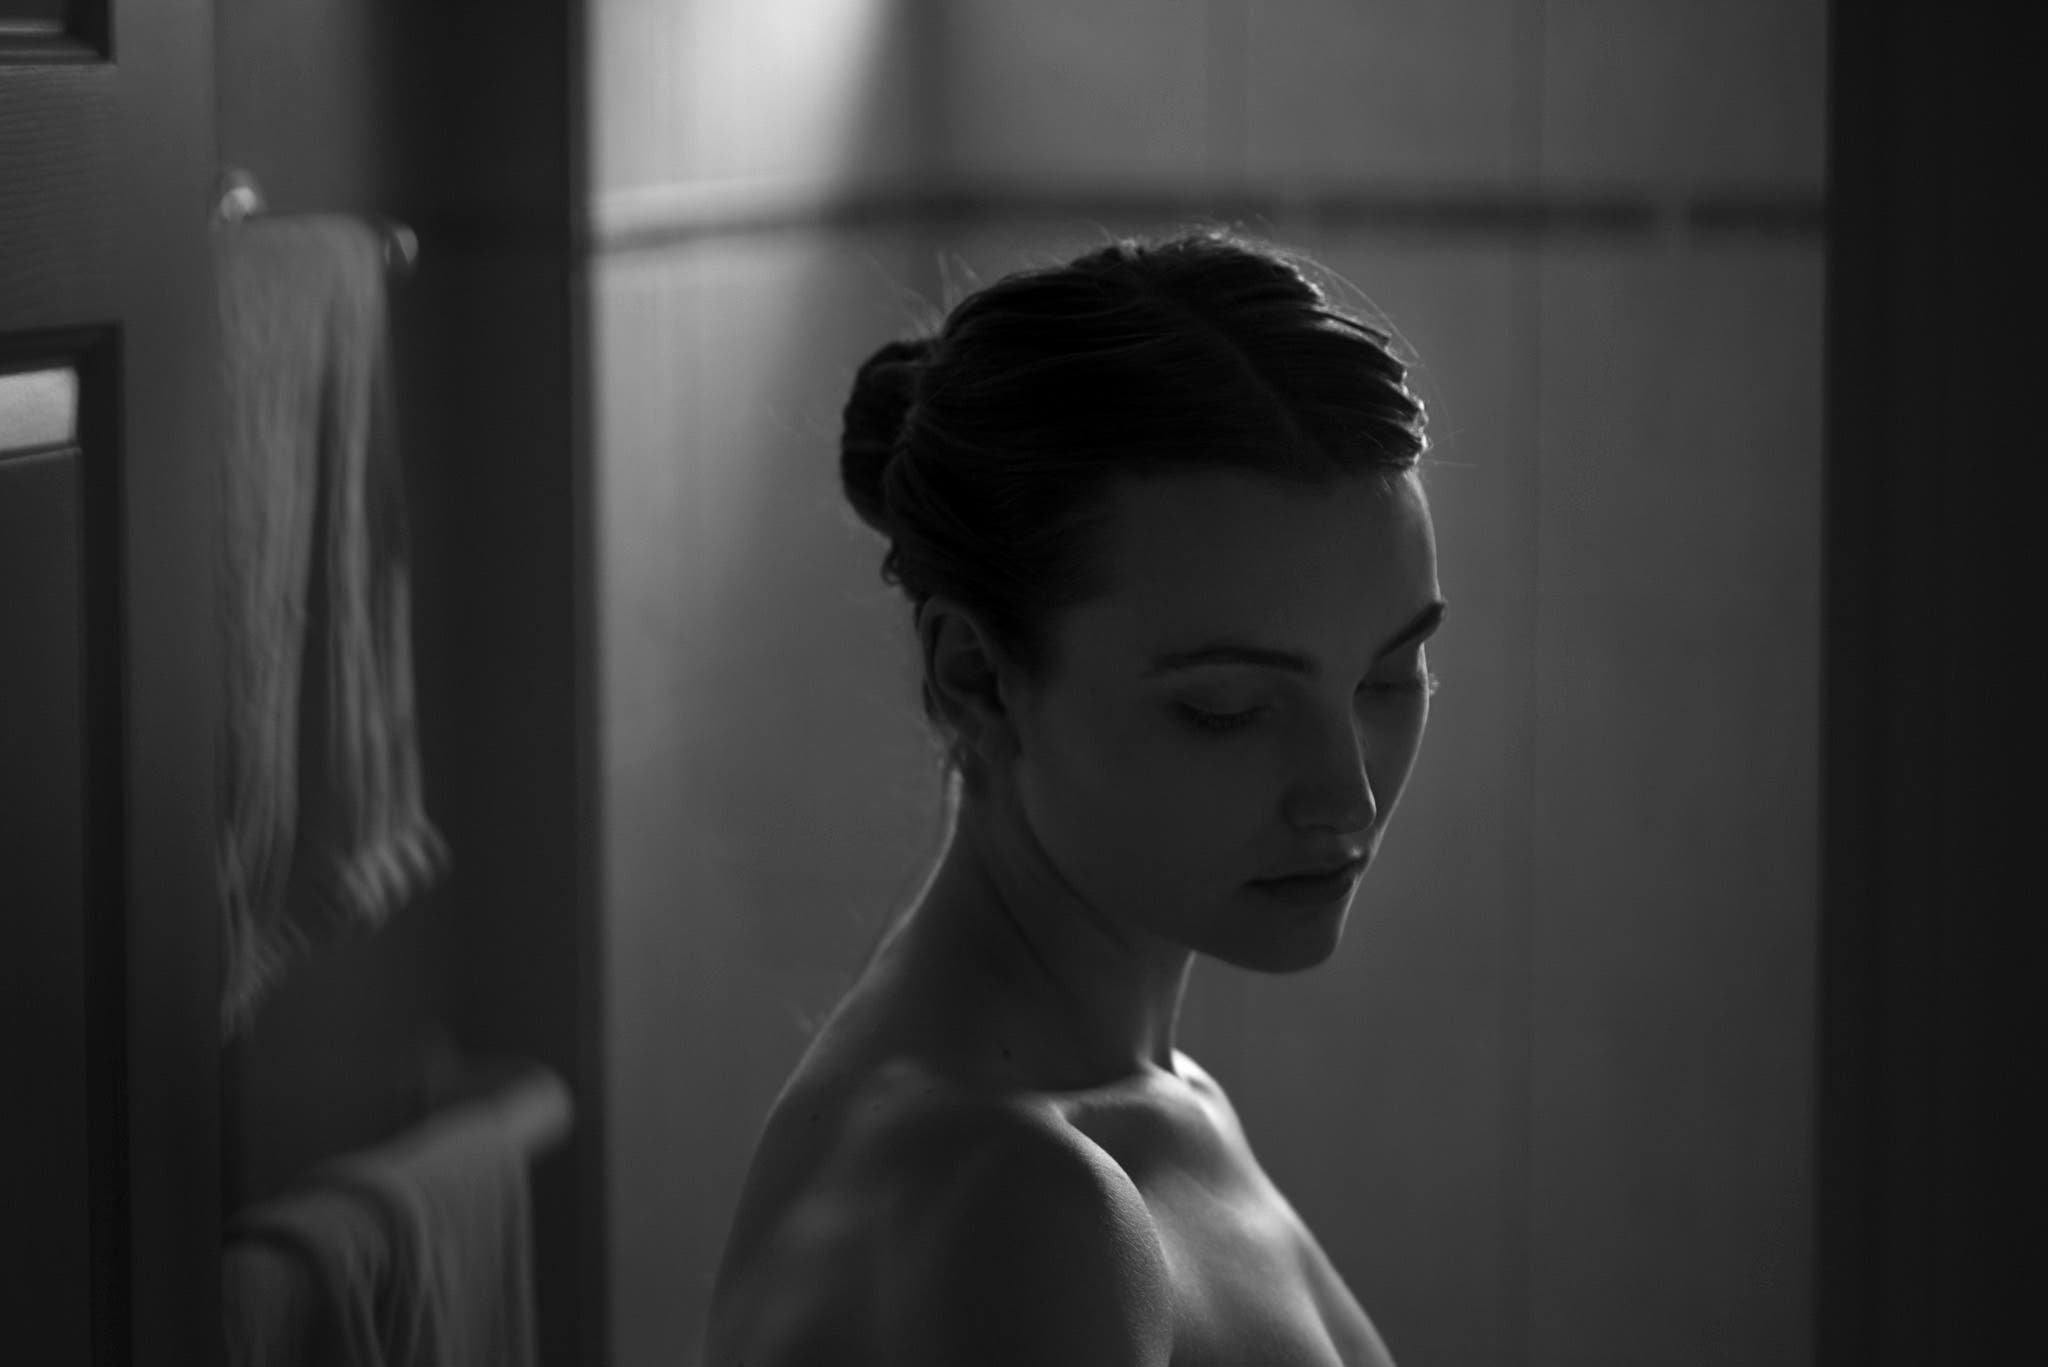 João Guedes Diaries Project Is All About Capturing Intimate Moments {NSFW} - The Phoblographer